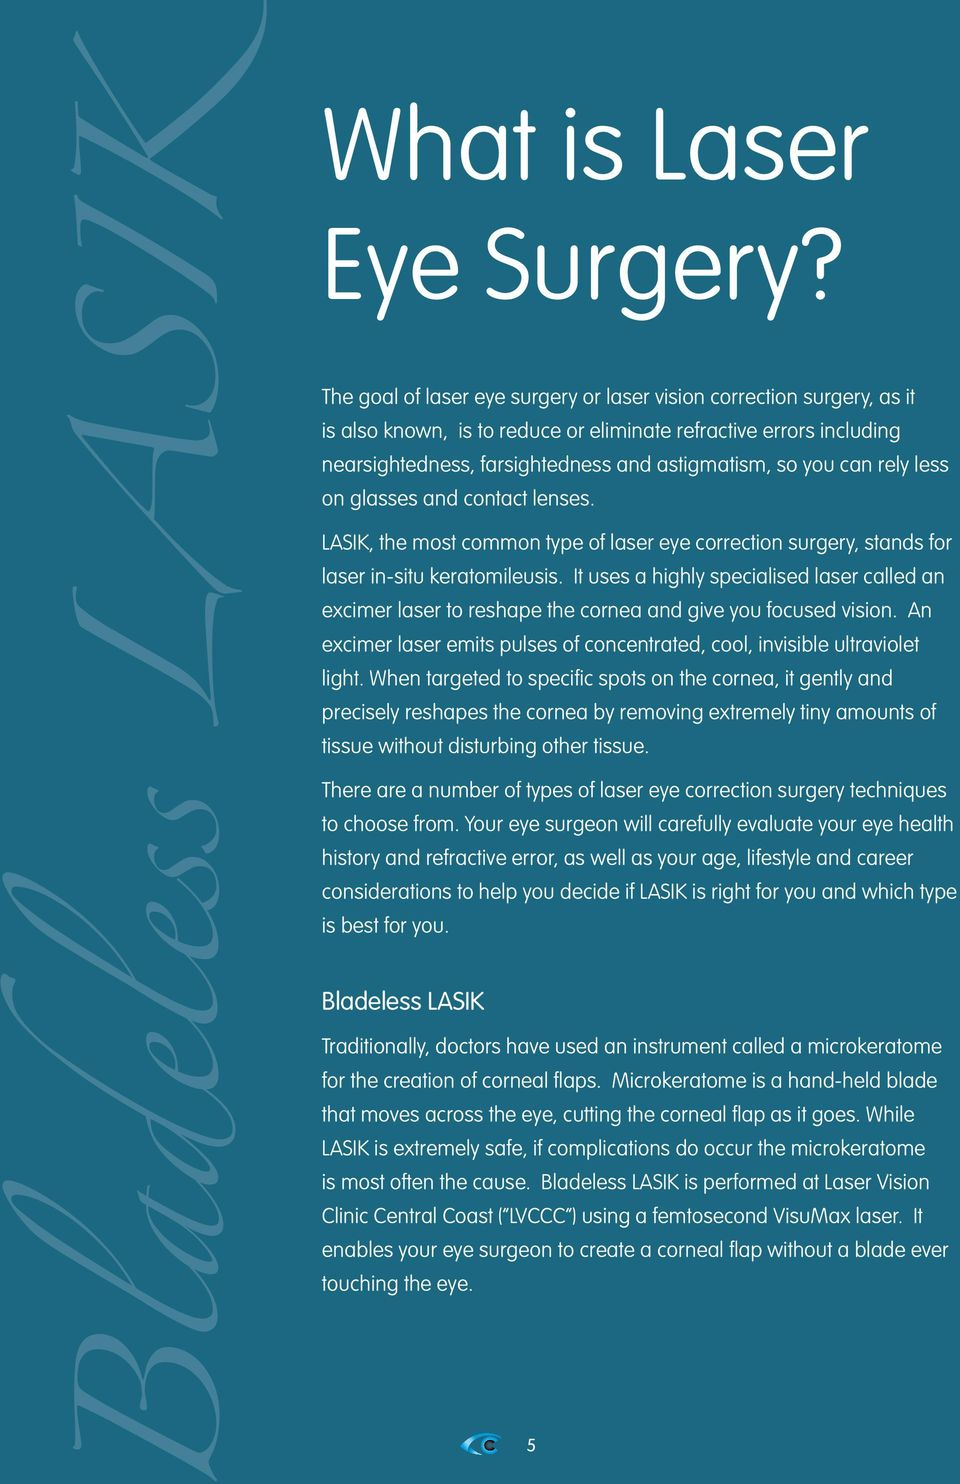 can rely less on glasses and contact lenses. LASIK, the most common type of laser eye correction surgery, stands for laser in-situ keratomileusis.